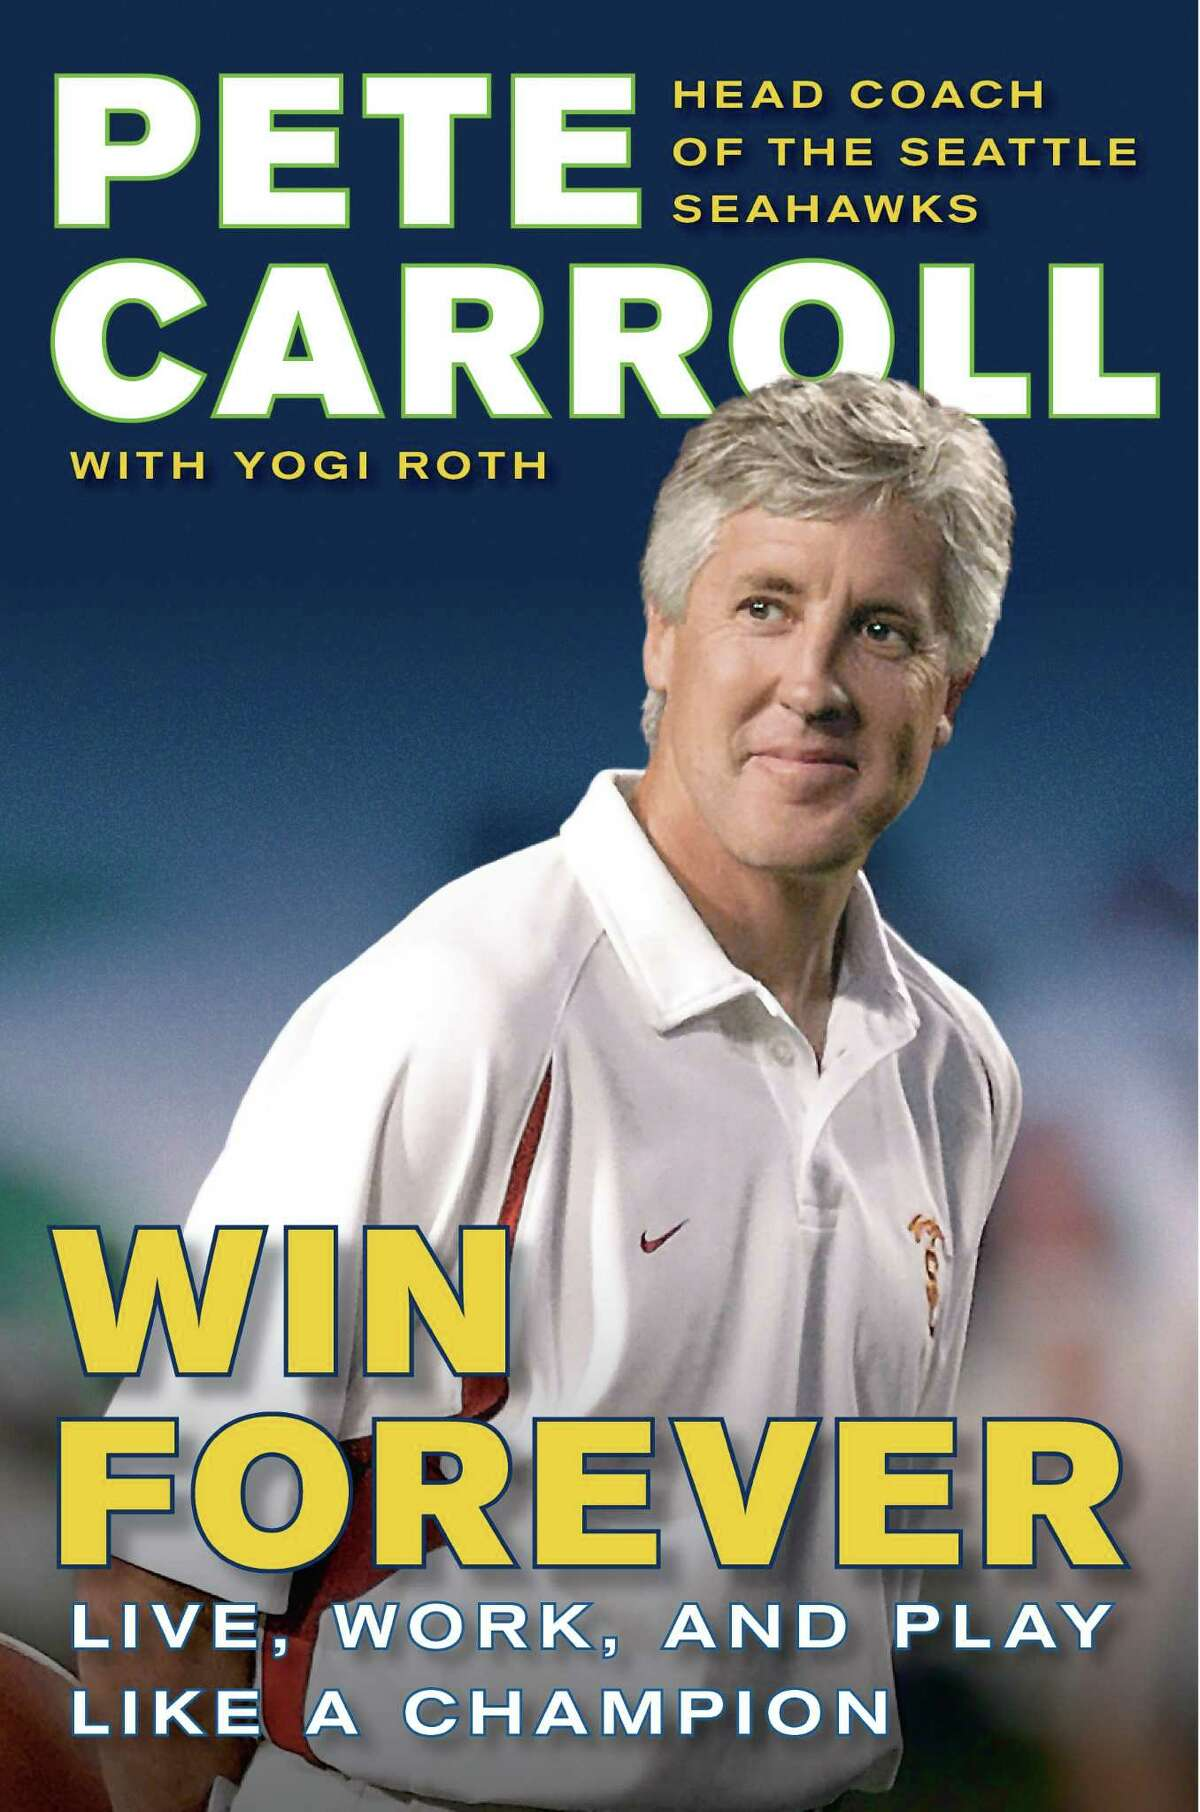 9) Pete Carroll's book wasn't titled,